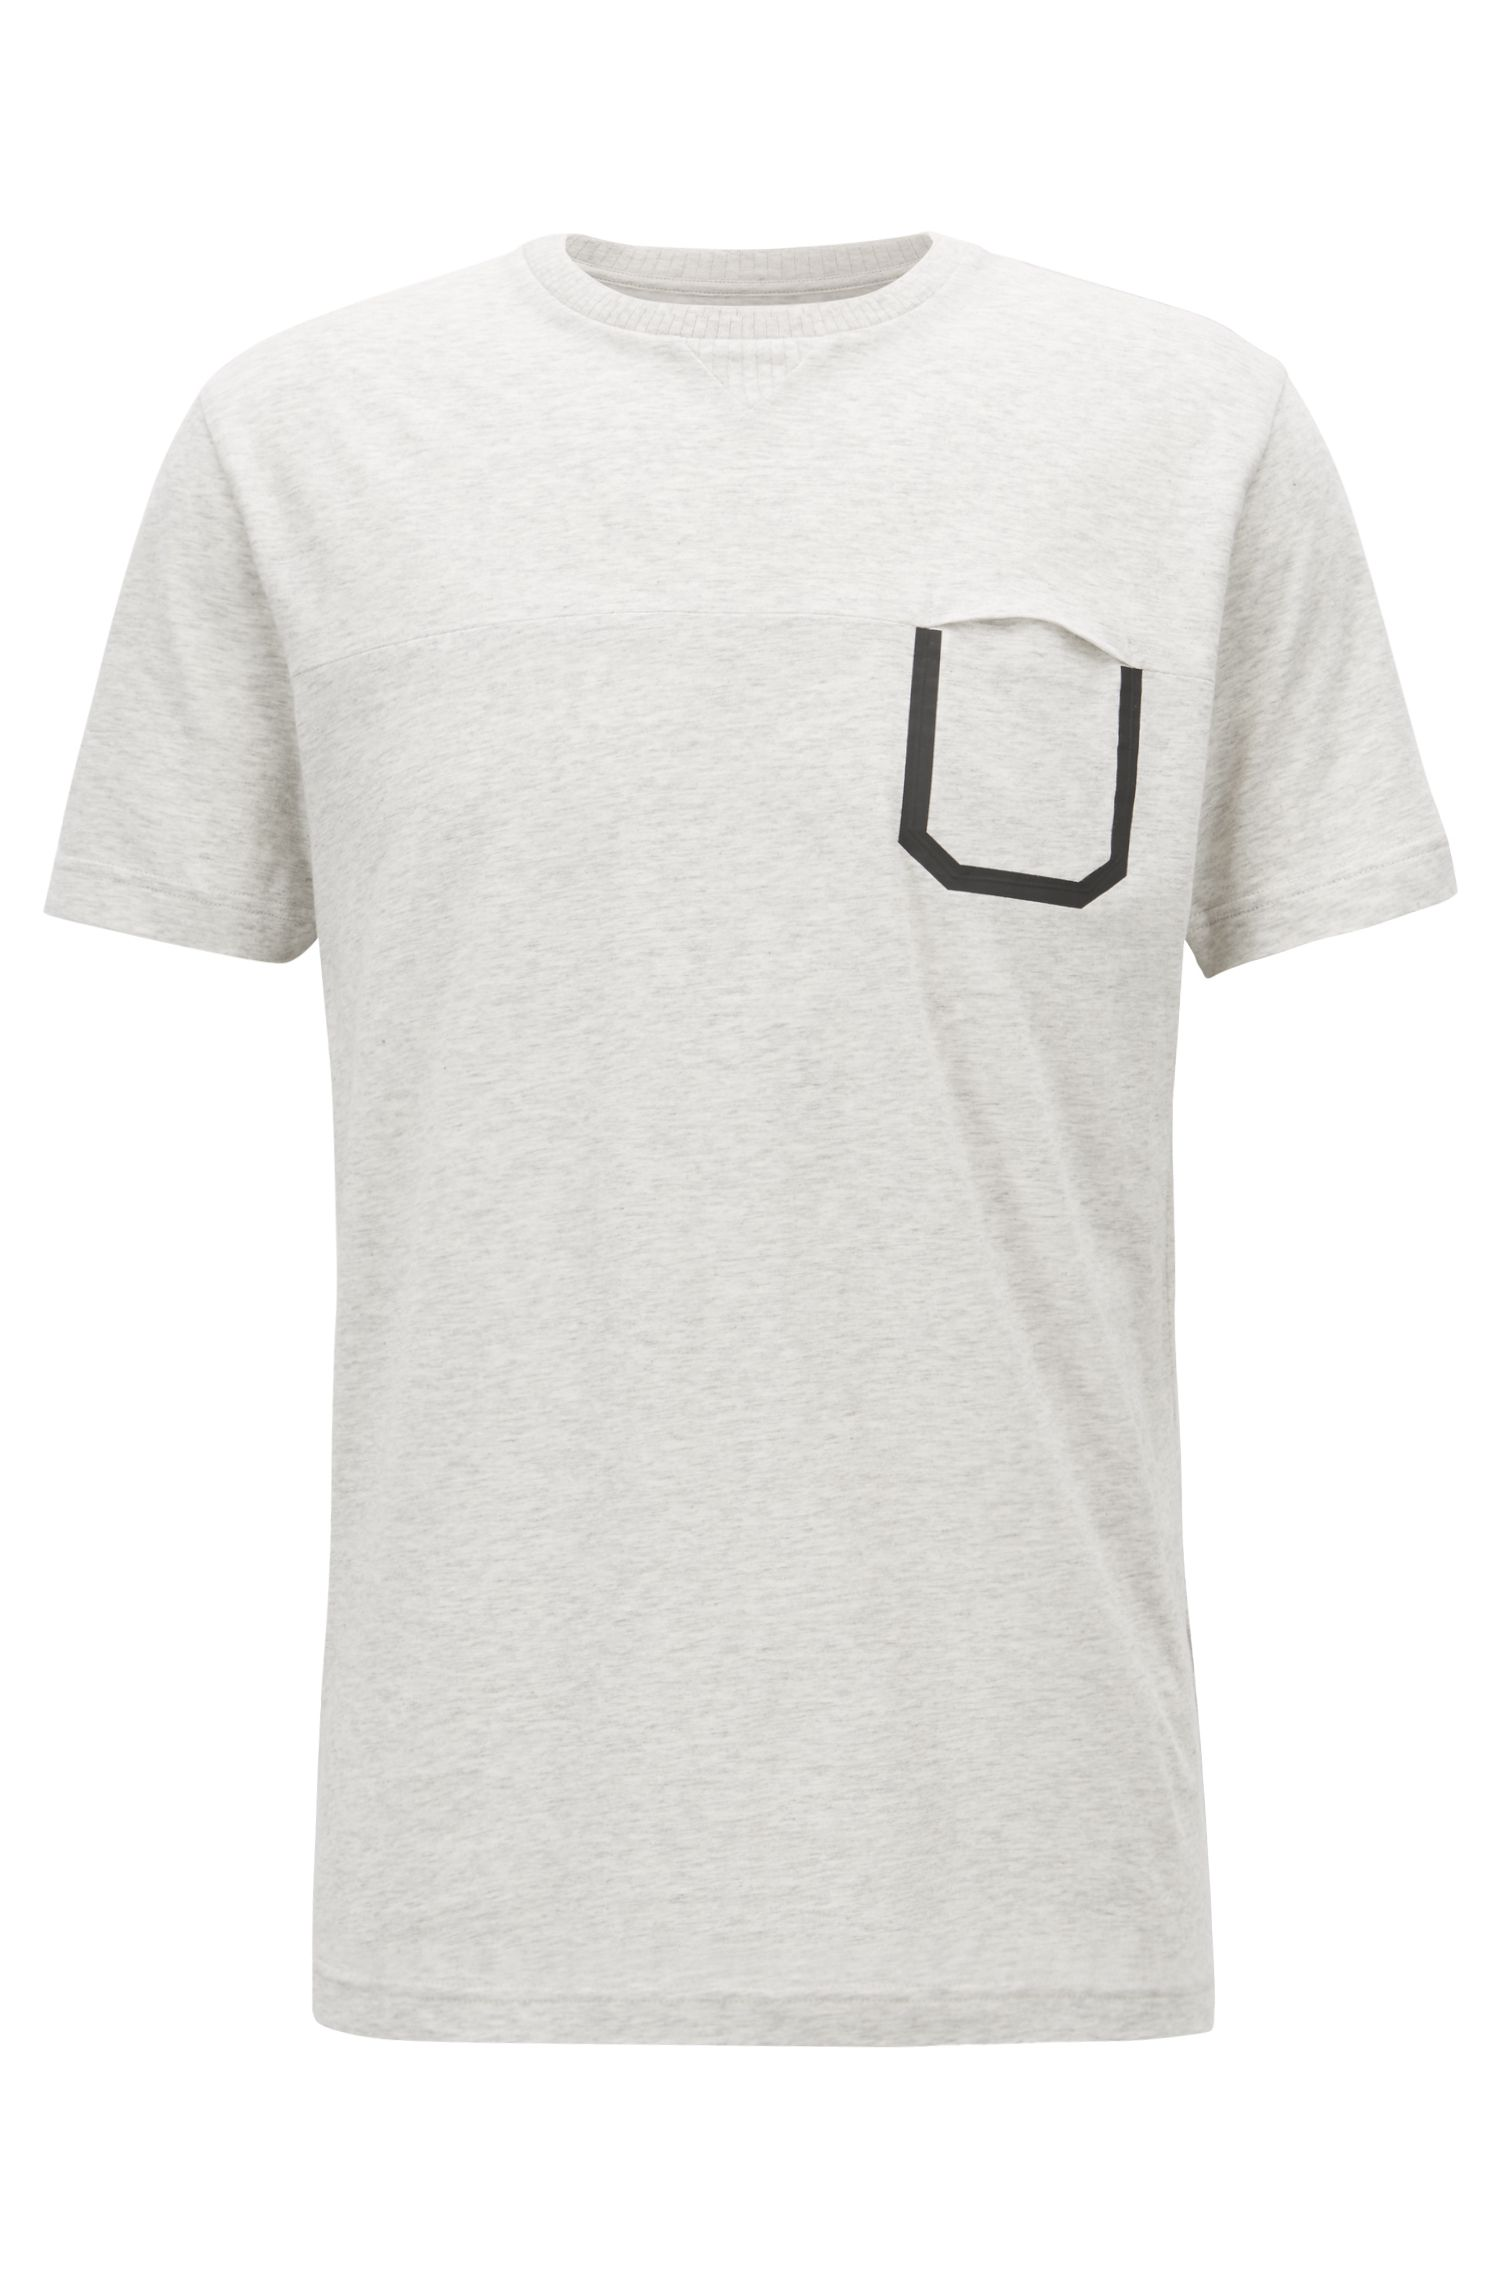 Melange cotton T-shirt with pocket detail, Natural